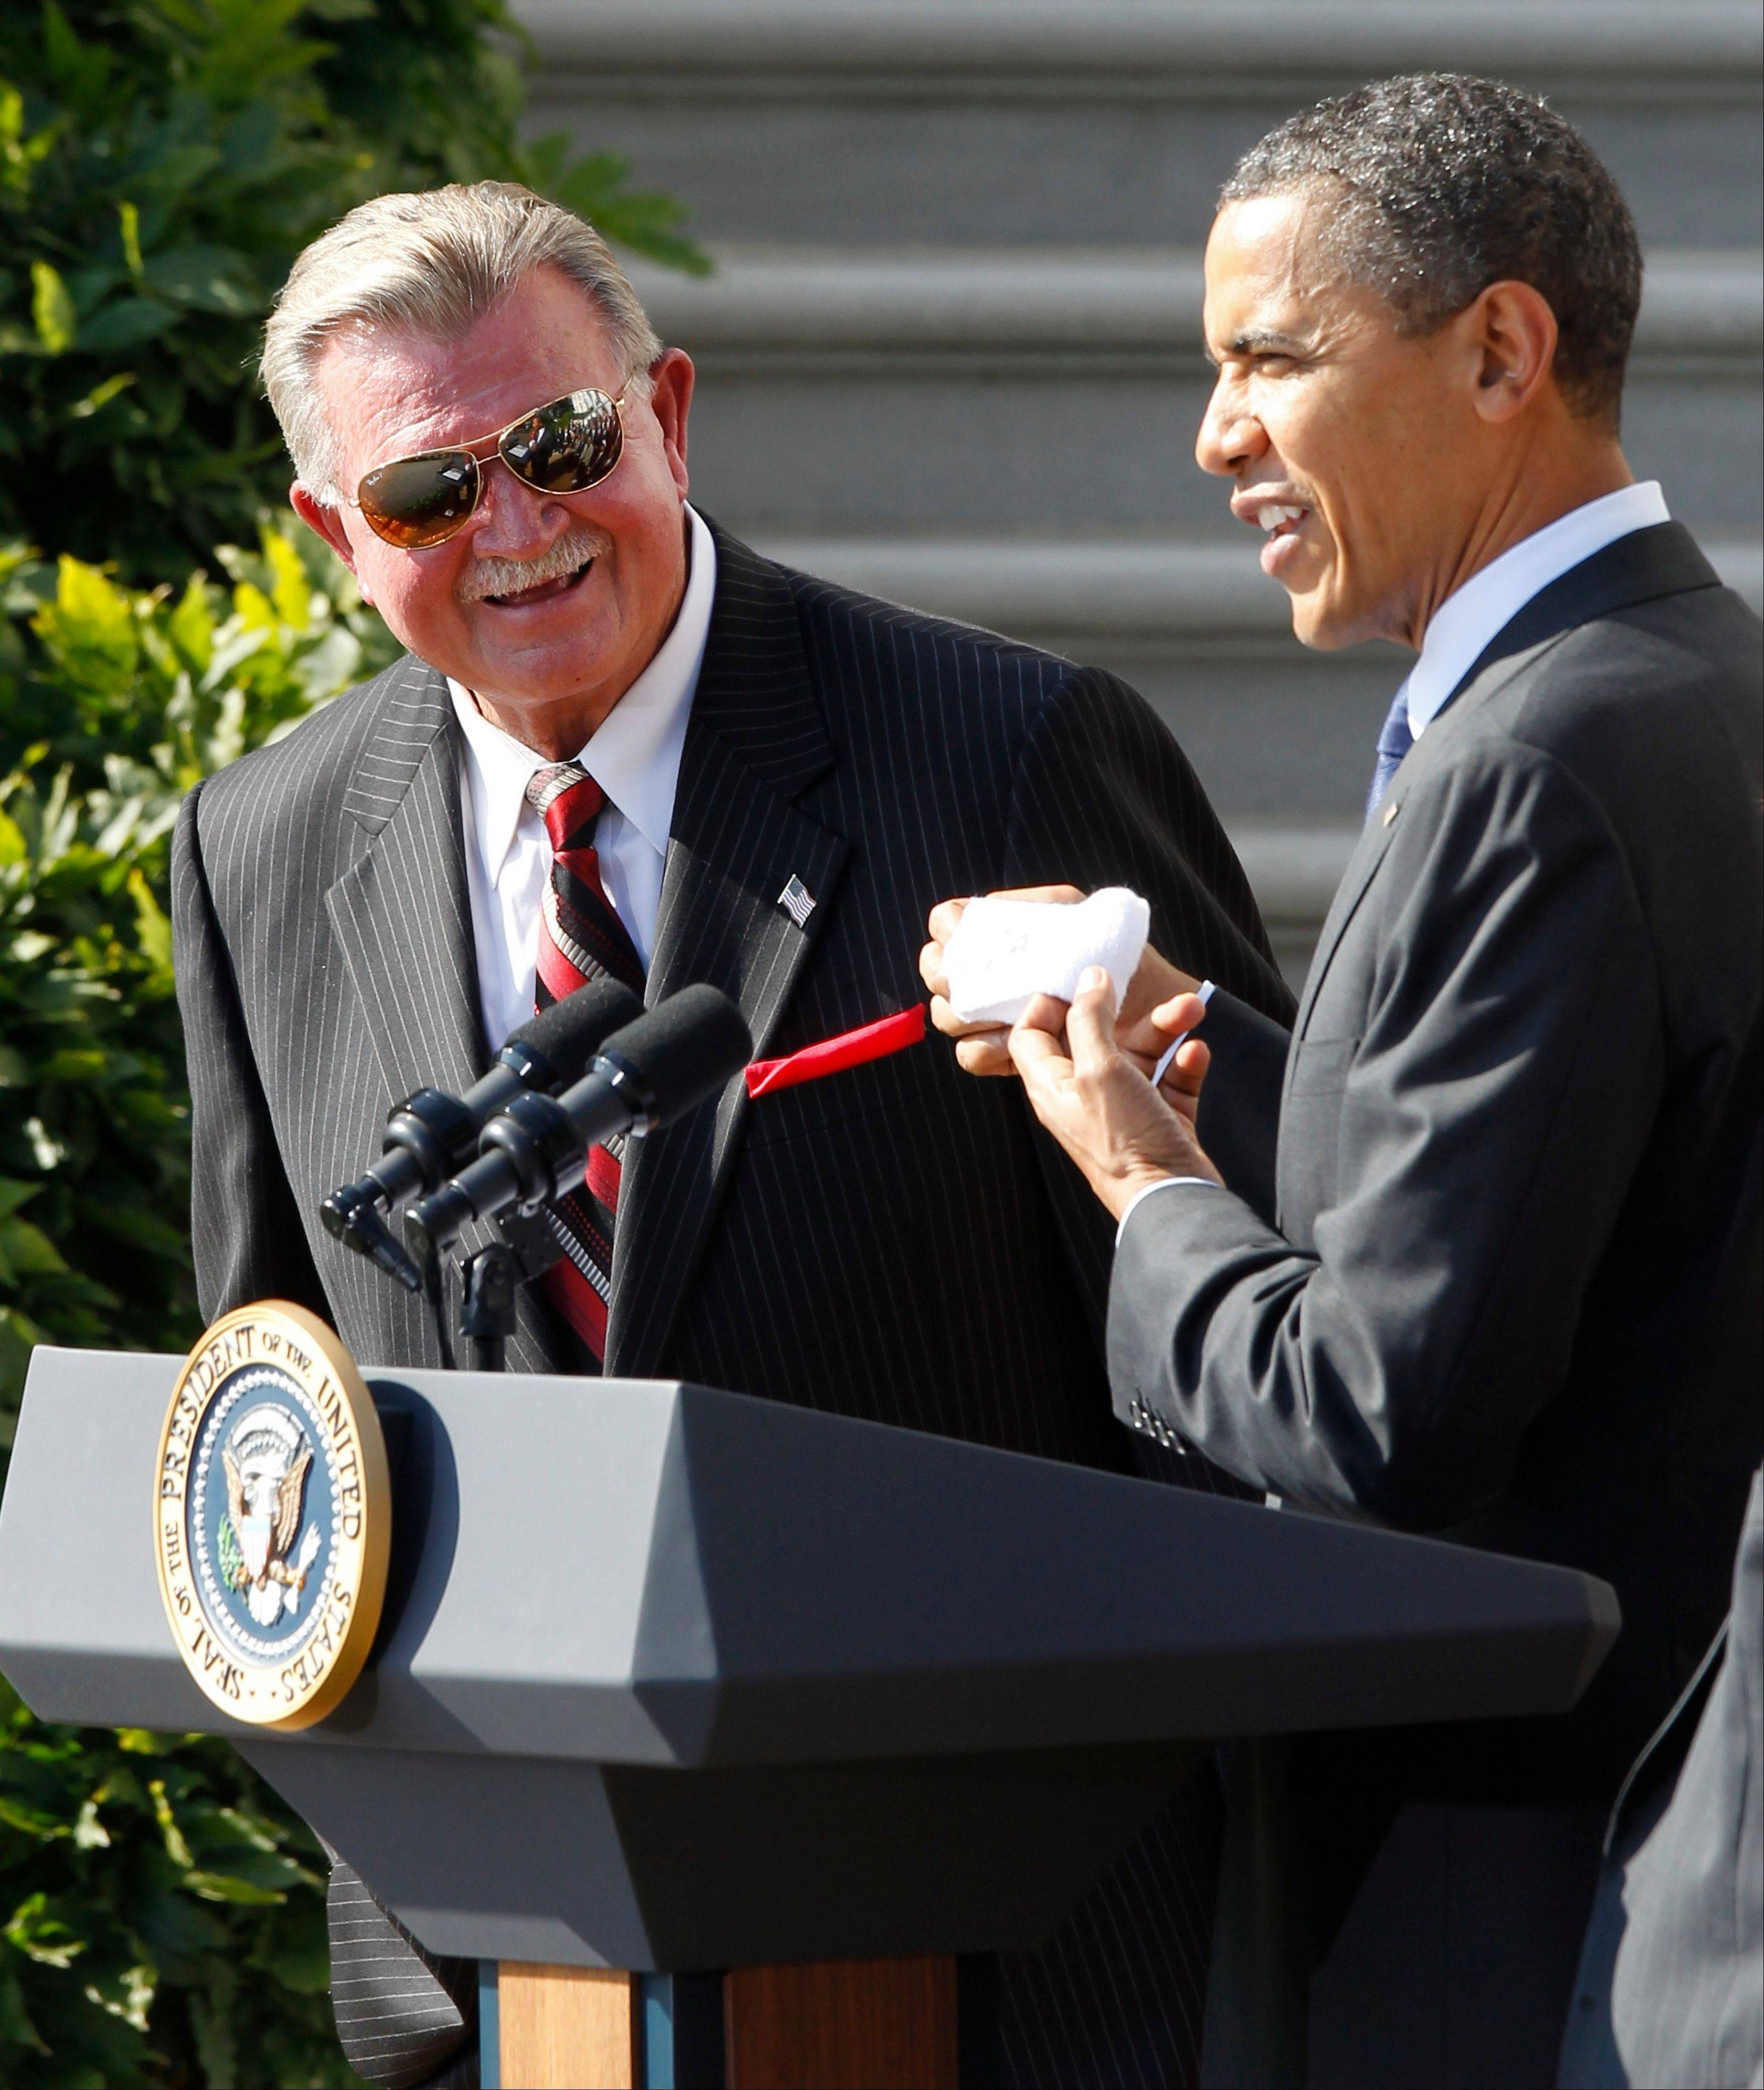 President Barack Obama holds up a headband given to him by quarterback Jim McMahon as he stands with head coach Mike Ditka as he honors the 1985 Super Bowl XX Champions Chicago Bears football team during a ceremony on the South Lawn of the White House in Washington, Friday, Oct. 7, 2011.